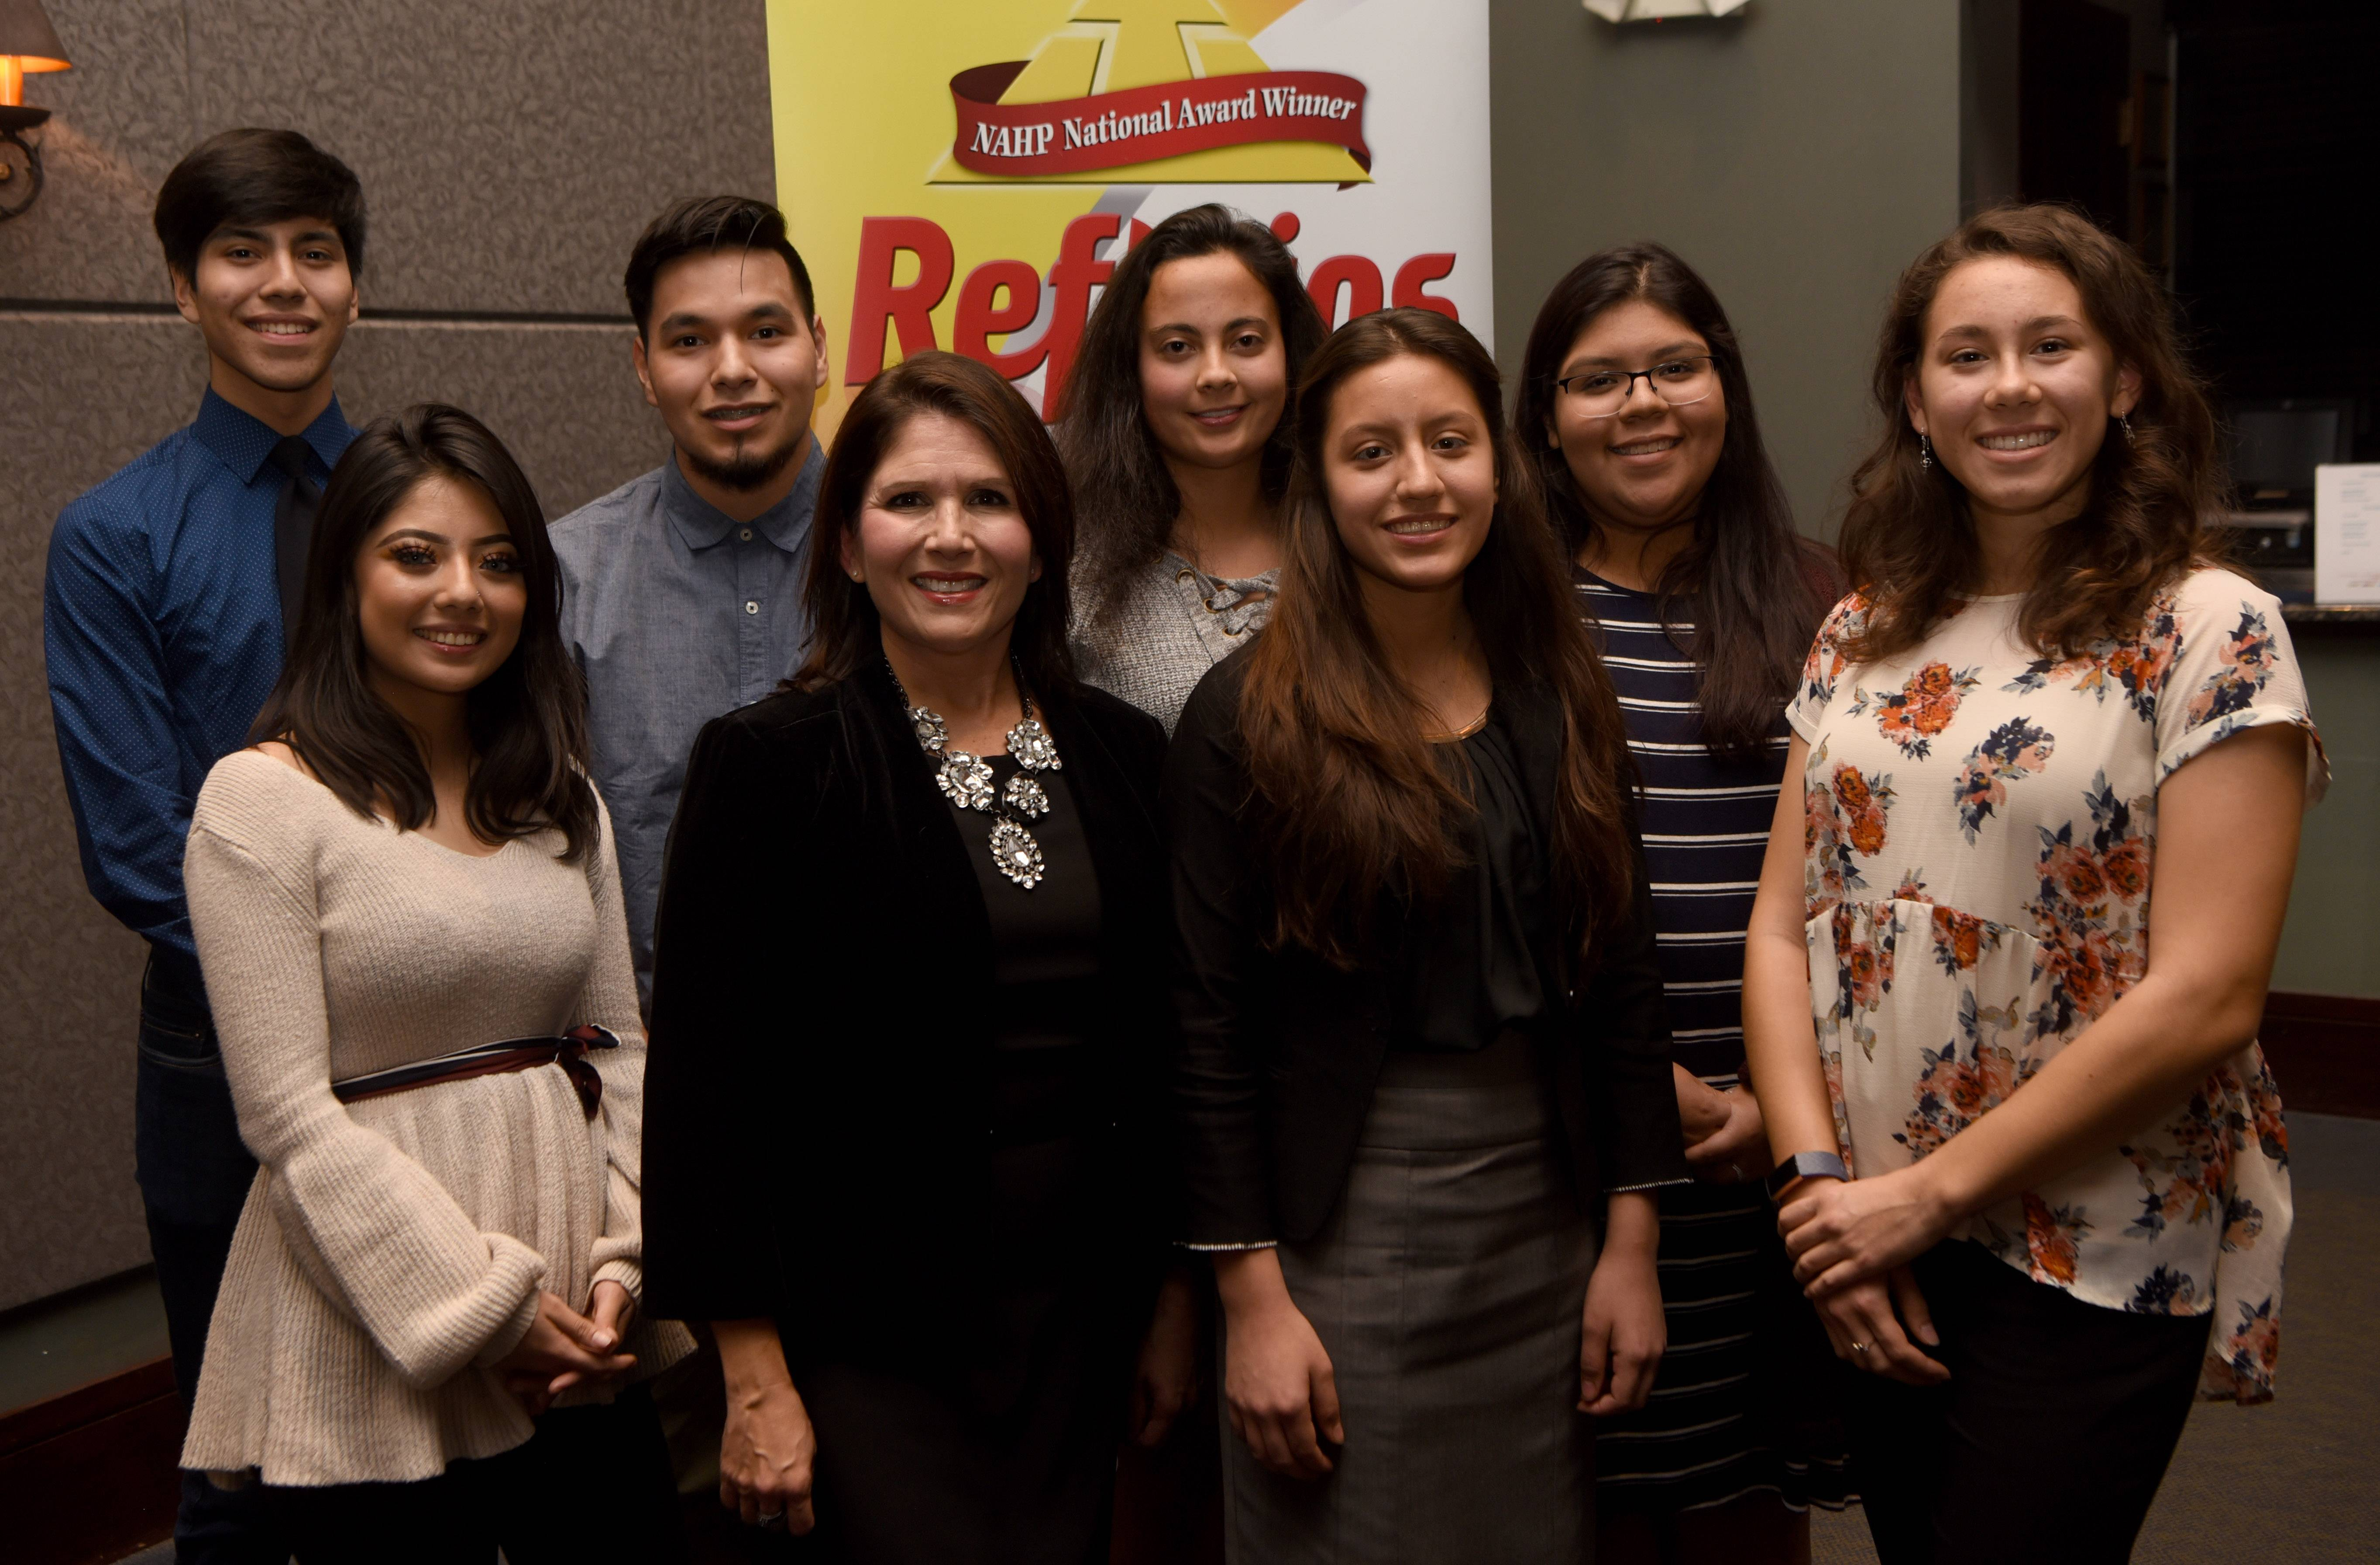 Scholarship recipients stand with Lt. Gov. Evelyn Sanguinetti, second from left in front row, during the Reflejos awards event Wednesday at Stonegate Banquets in Hoffman Estates.